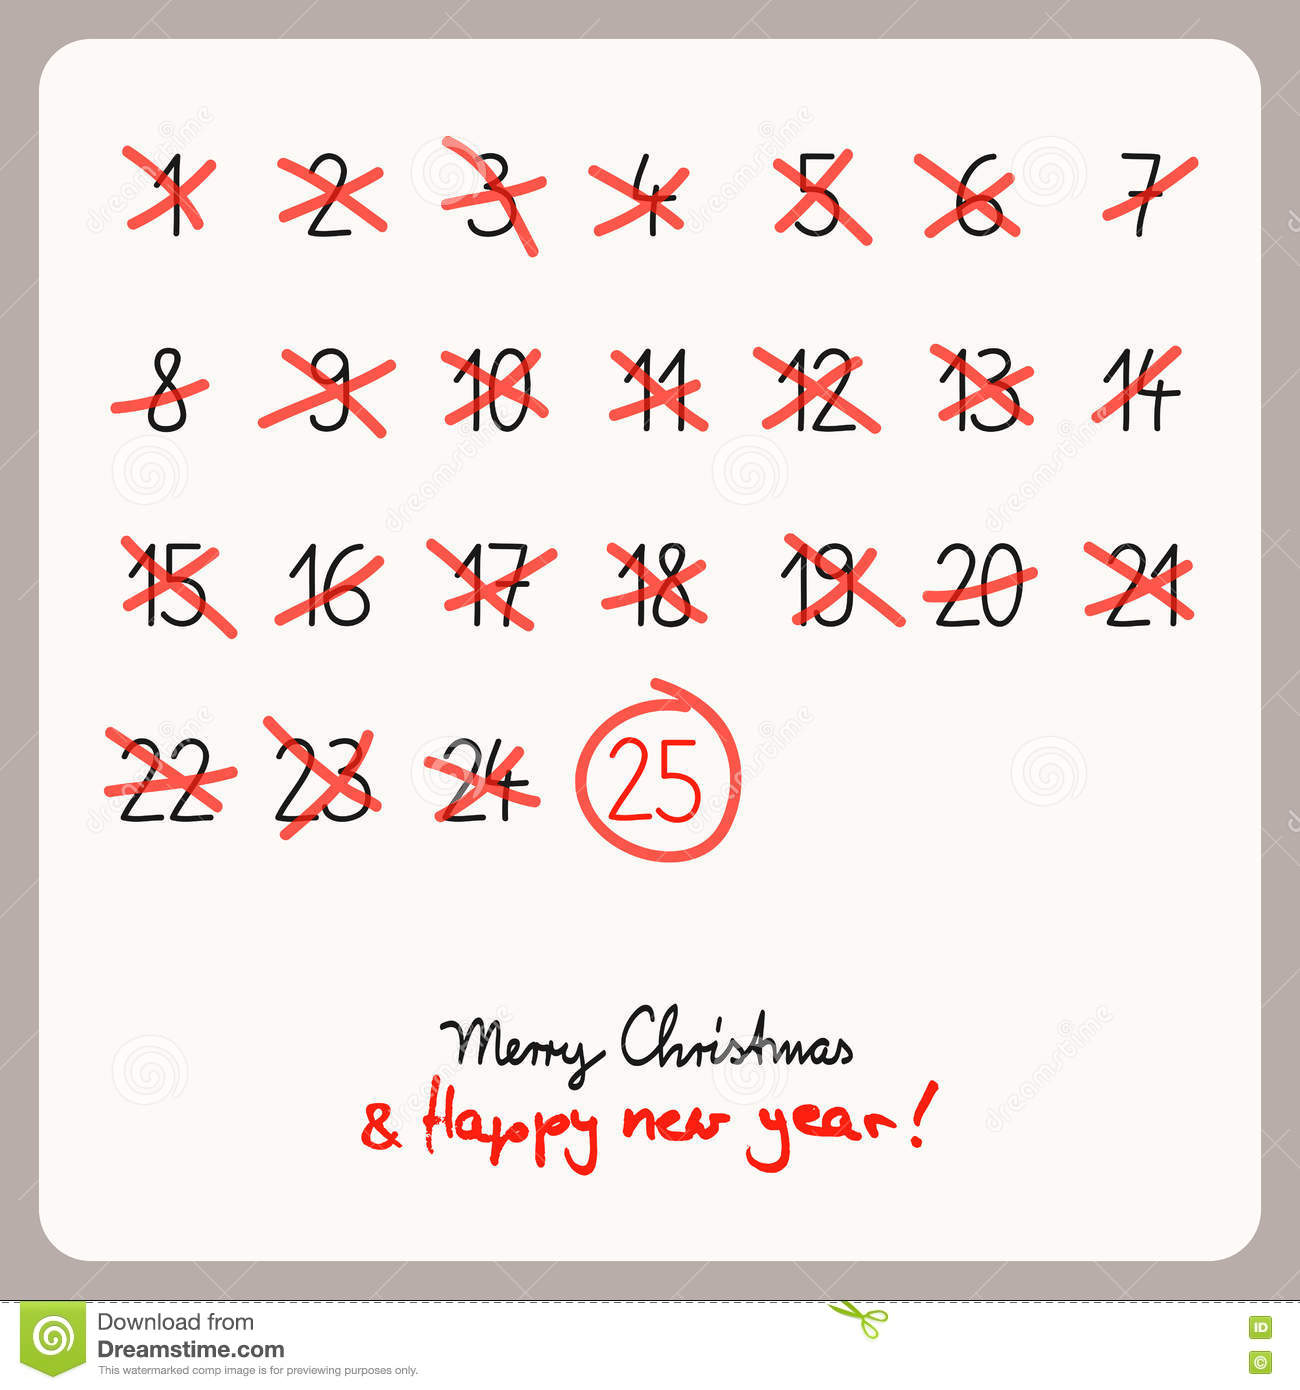 Christmas Calendar Illustration : Christmas calendar template for design stock